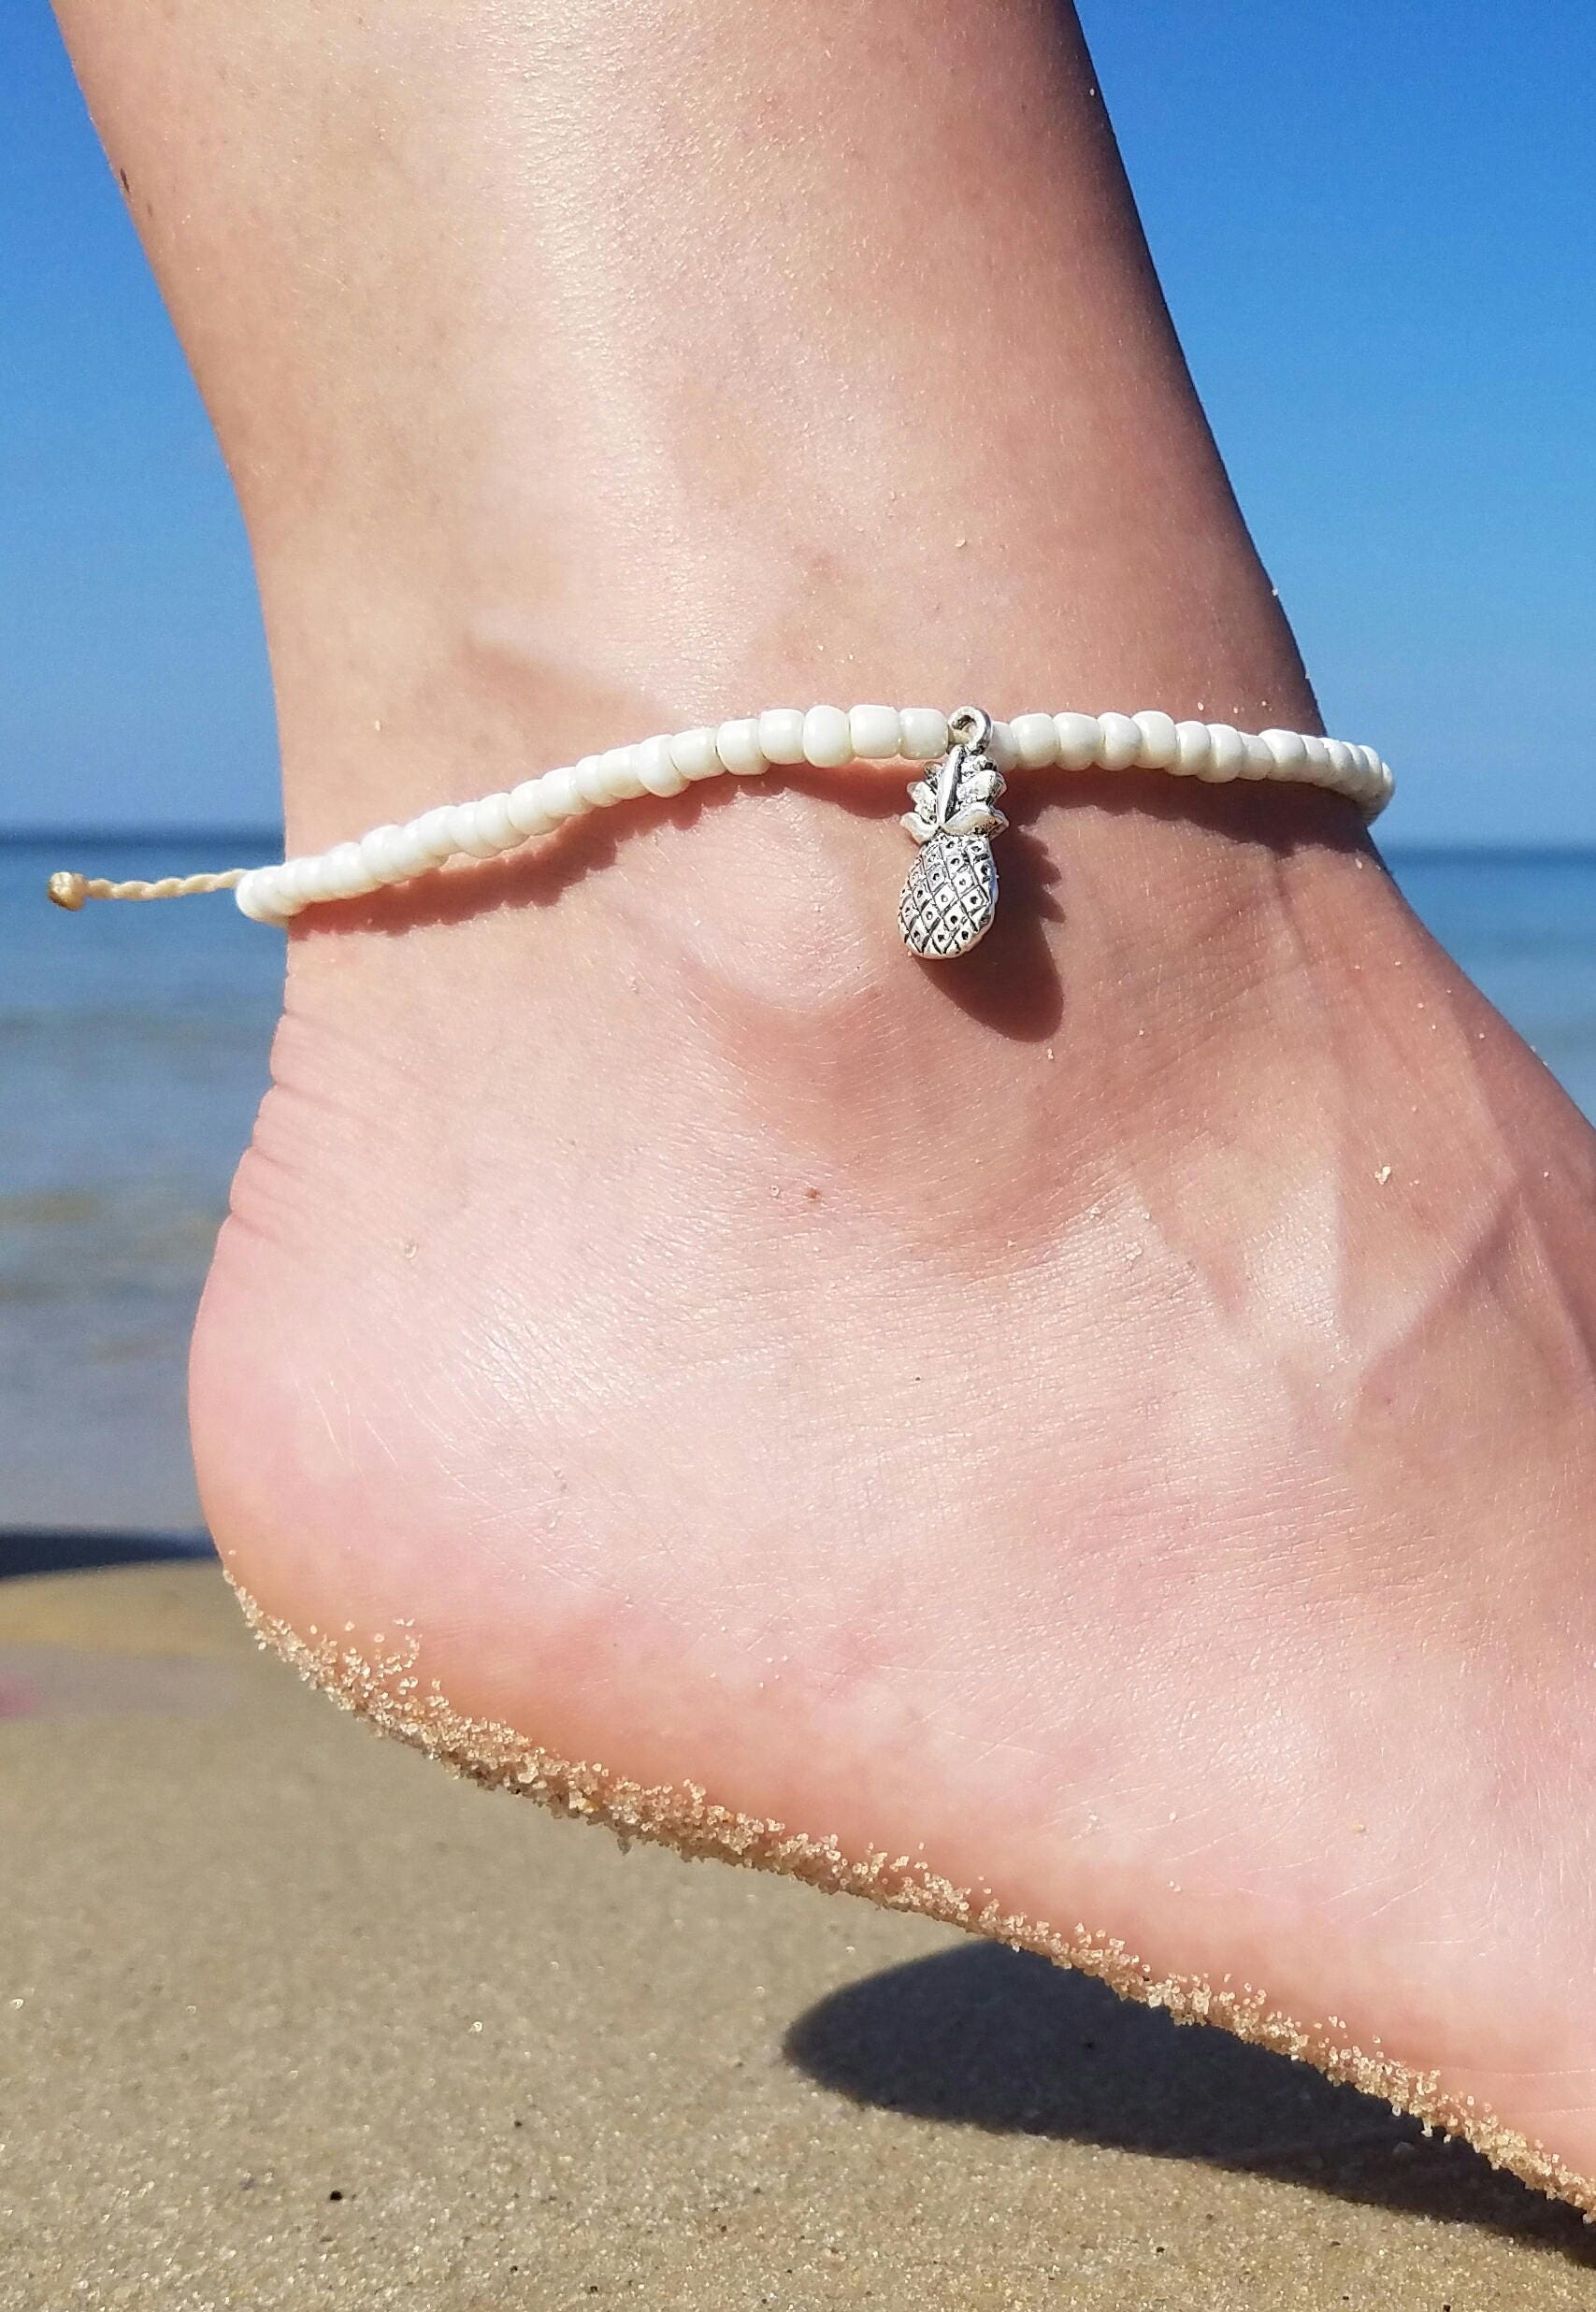 jewelry heart ankle bracelet bracelets in detail at palmbeach products tone gold puffed cfm two beach anklet